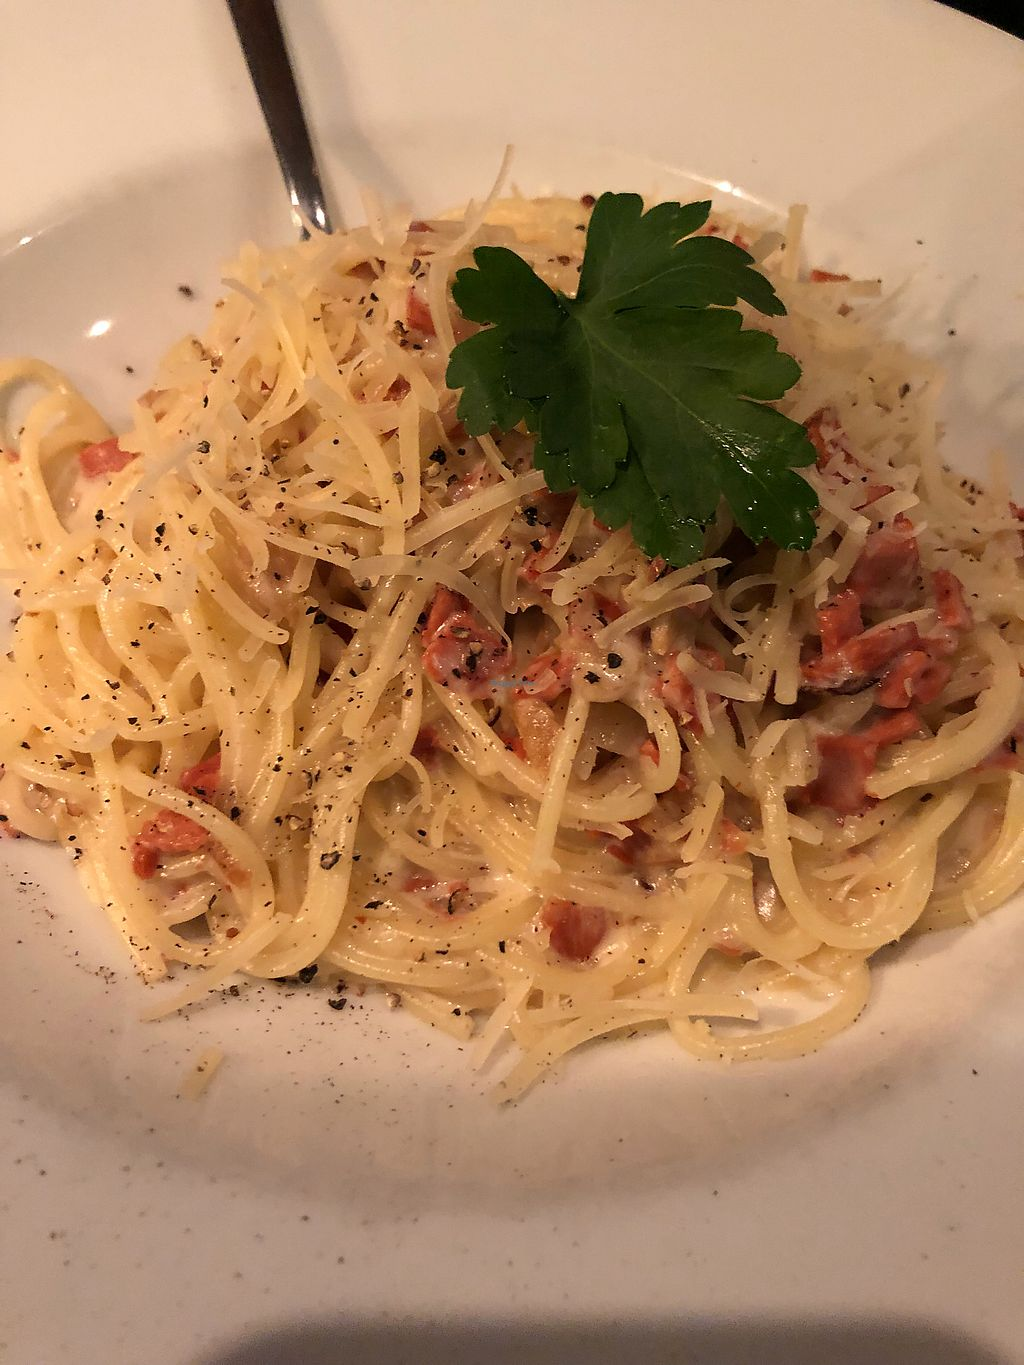 """Photo of Feca  by <a href=""""/members/profile/SeitanSeitanSeitan"""">SeitanSeitanSeitan</a> <br/>Vegan carbonara, yum!! <br/> April 14, 2018  - <a href='/contact/abuse/image/69651/385623'>Report</a>"""